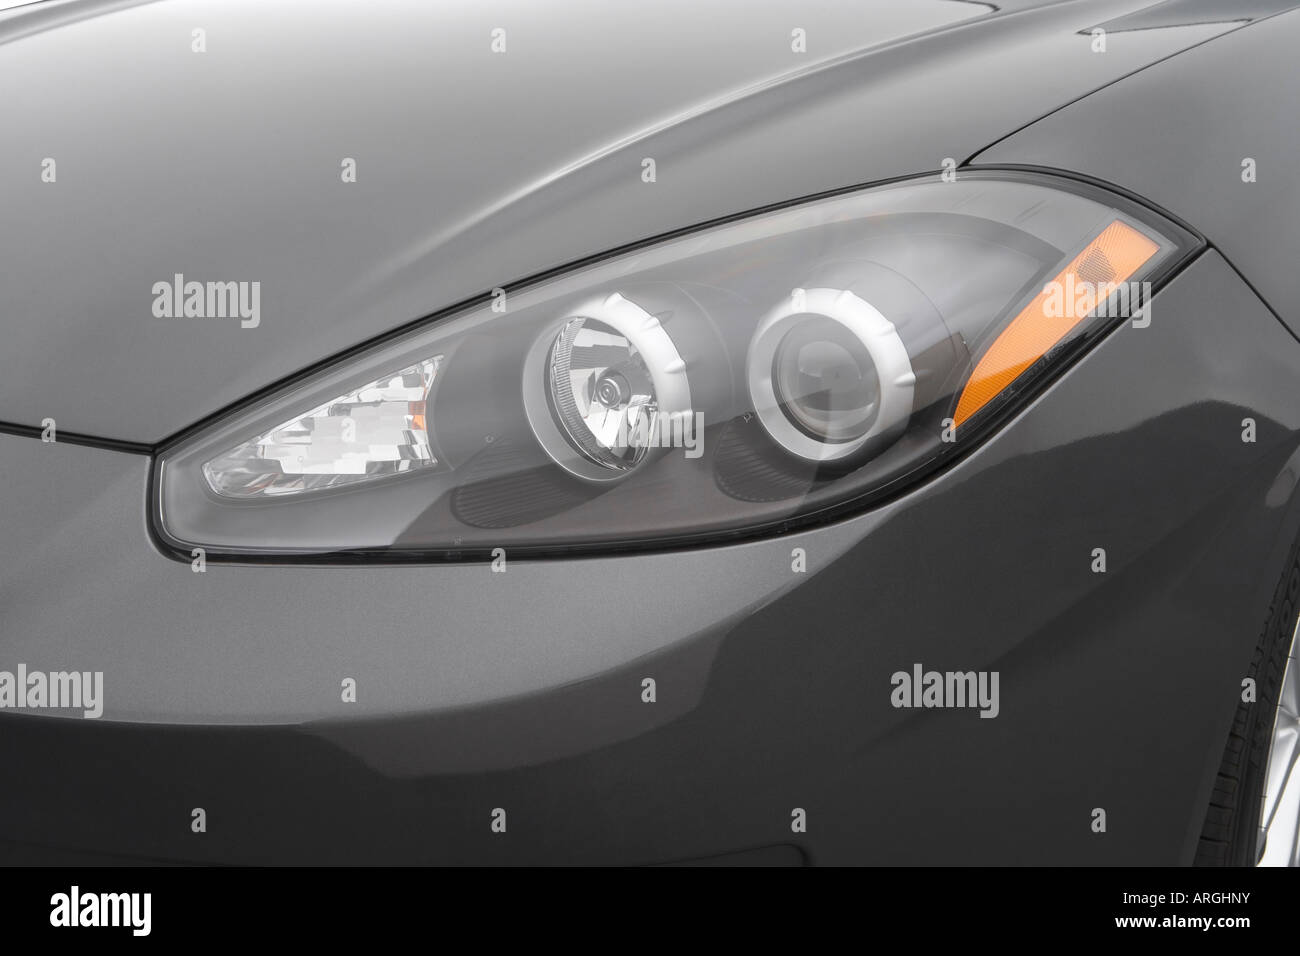 2007 Hyundai Tiburon GT In Gray   Headlight